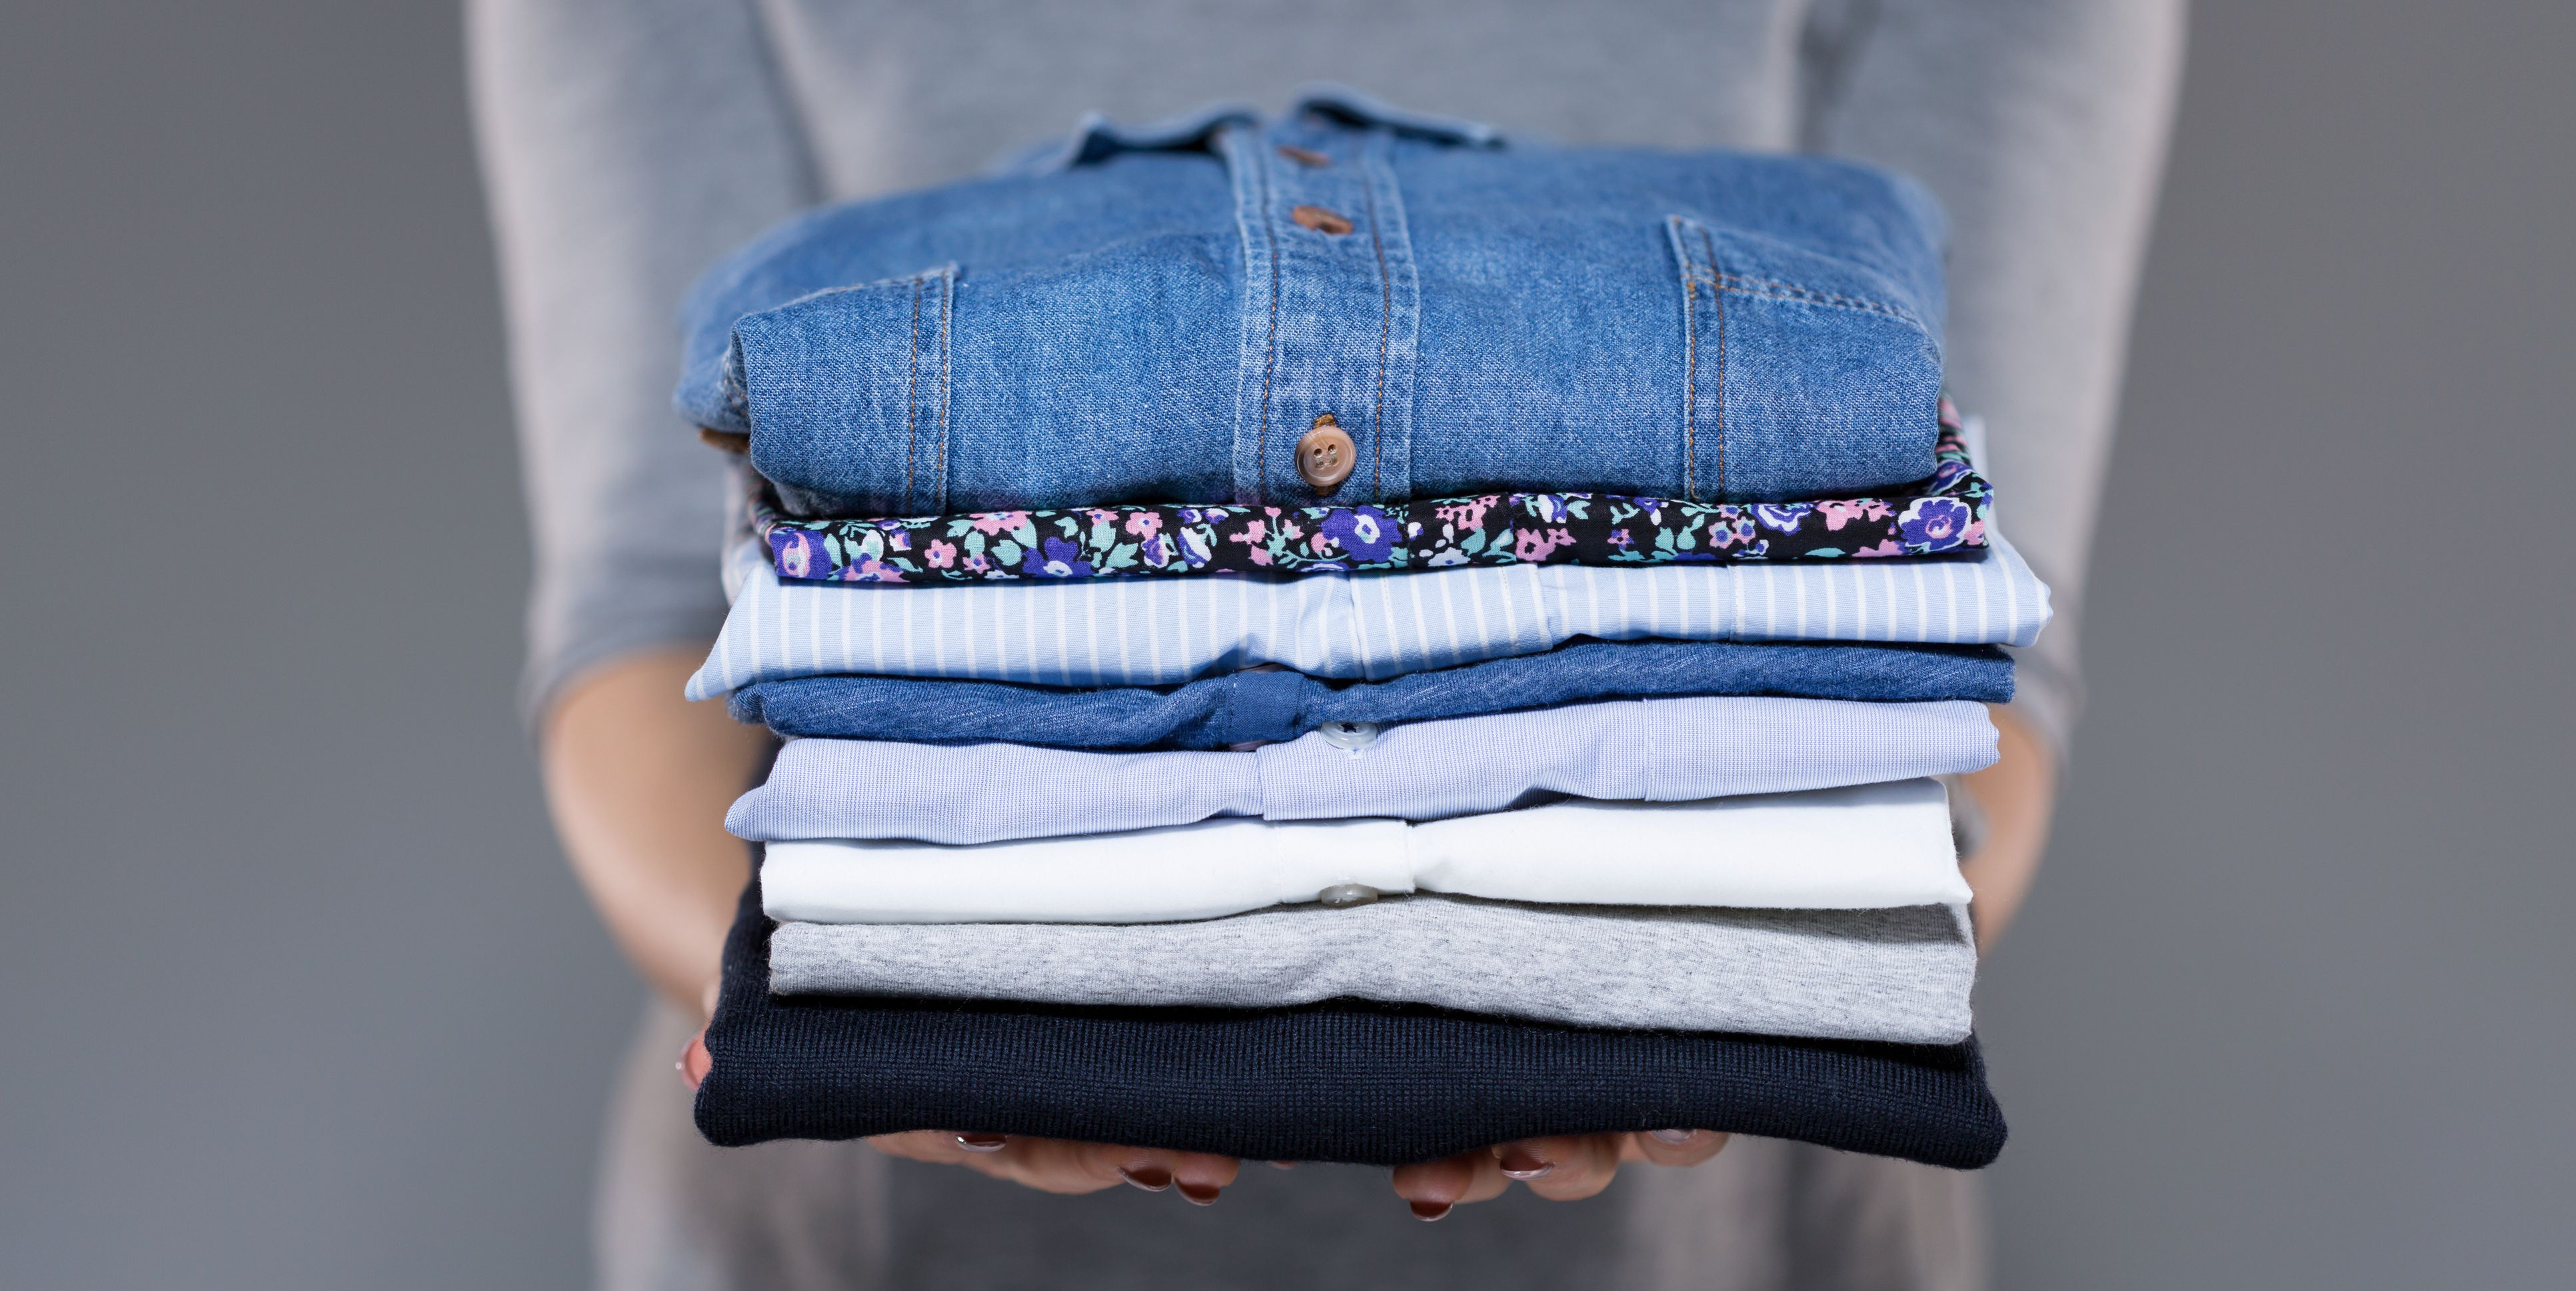 9 Genius Ways to Fold Clothes to Save Space